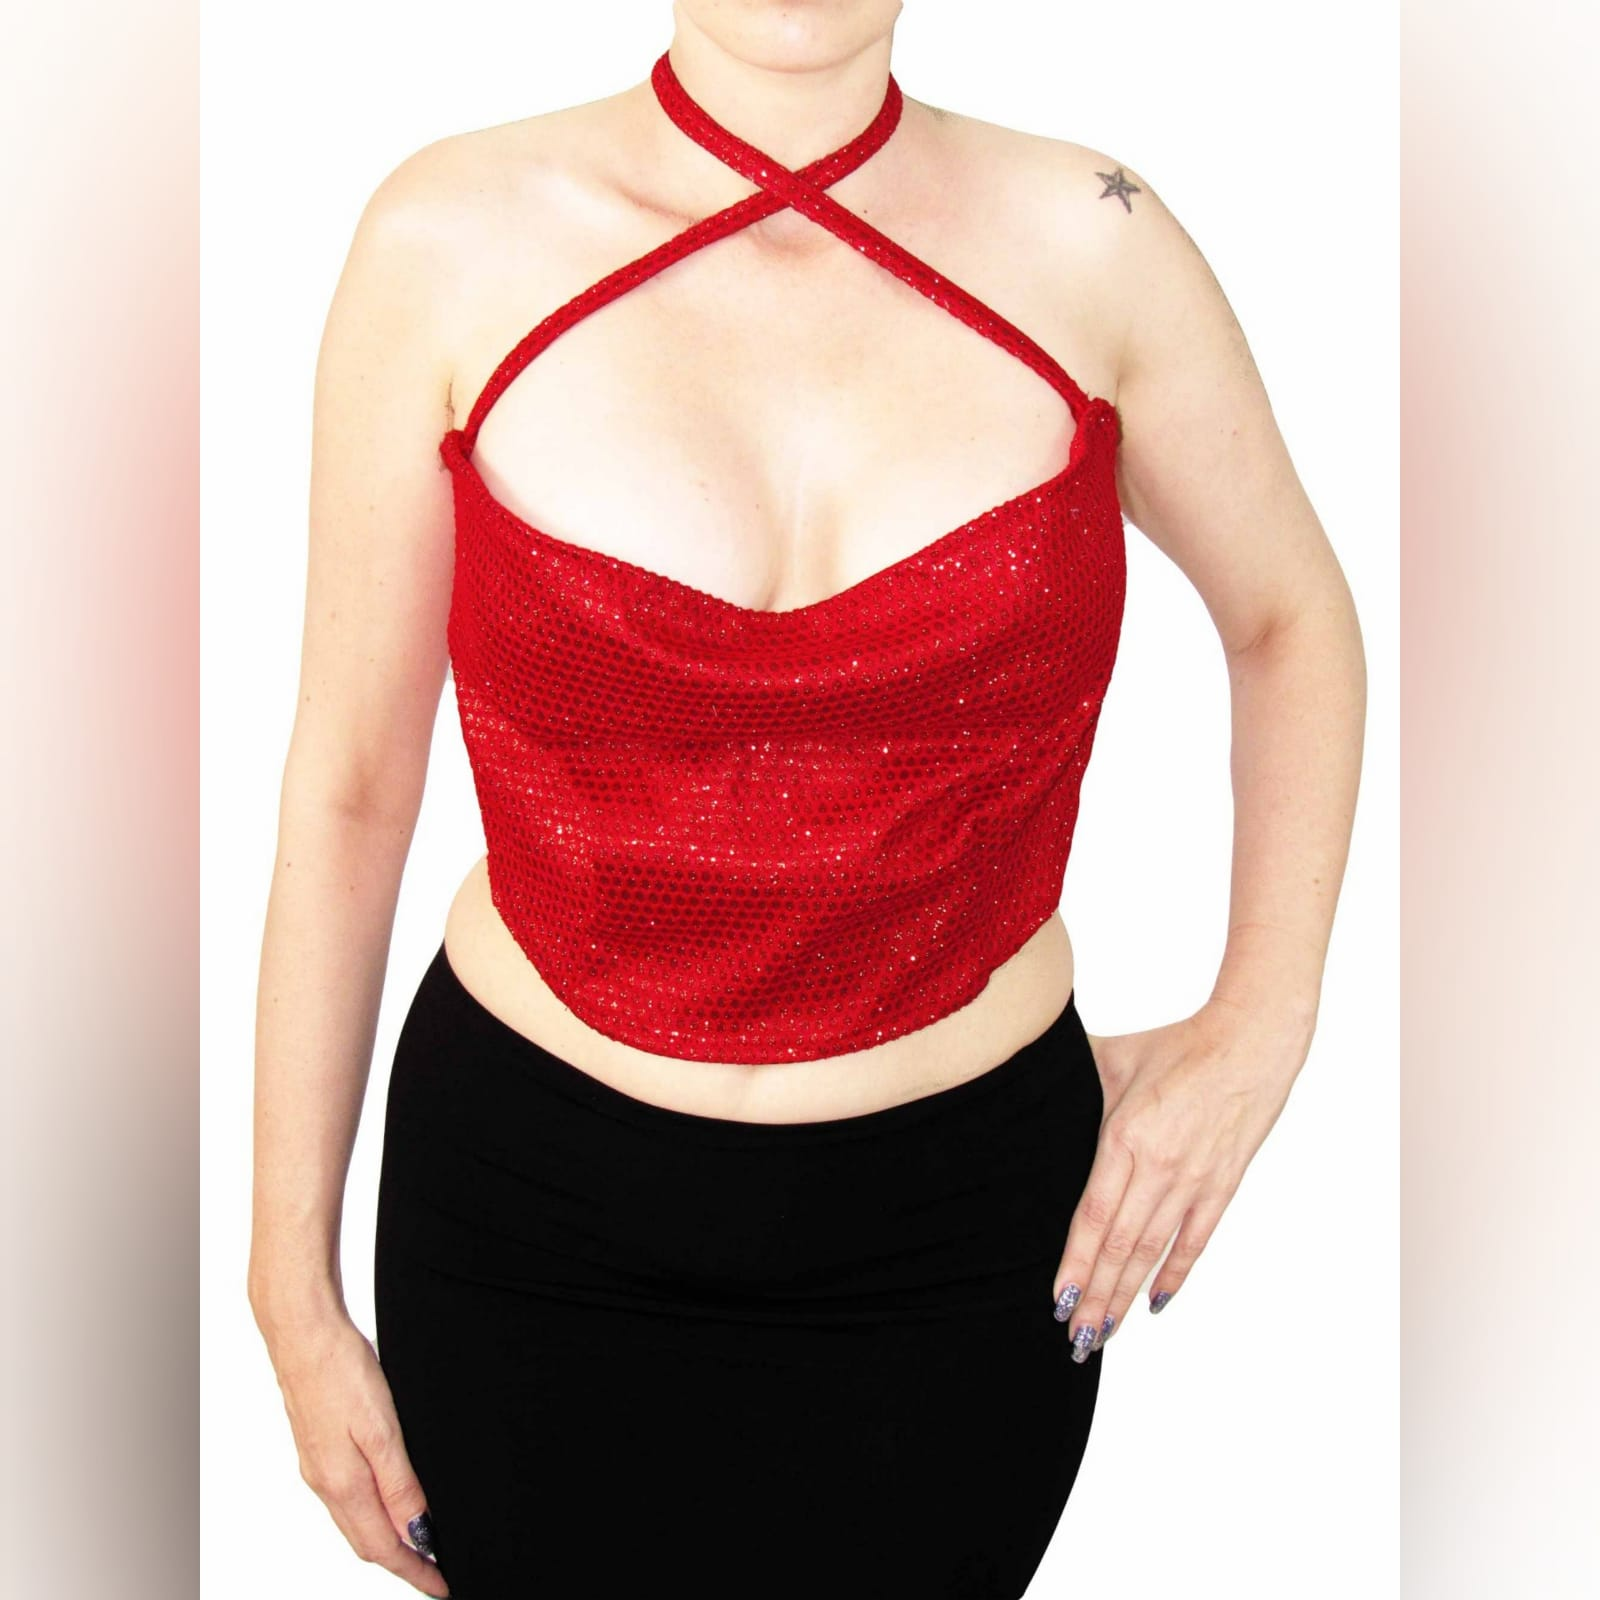 Red glitter crop top 3 red glitter crop top. Handmade crop top, one of a kindwith a tie-up back to adjust fit. Neck string can be tied up in different ways. This crop top has a cowlneck, that can be made higher or lower depending on how you choose to tie it up. A great sexy red top for a warm summers day or a fun night out.